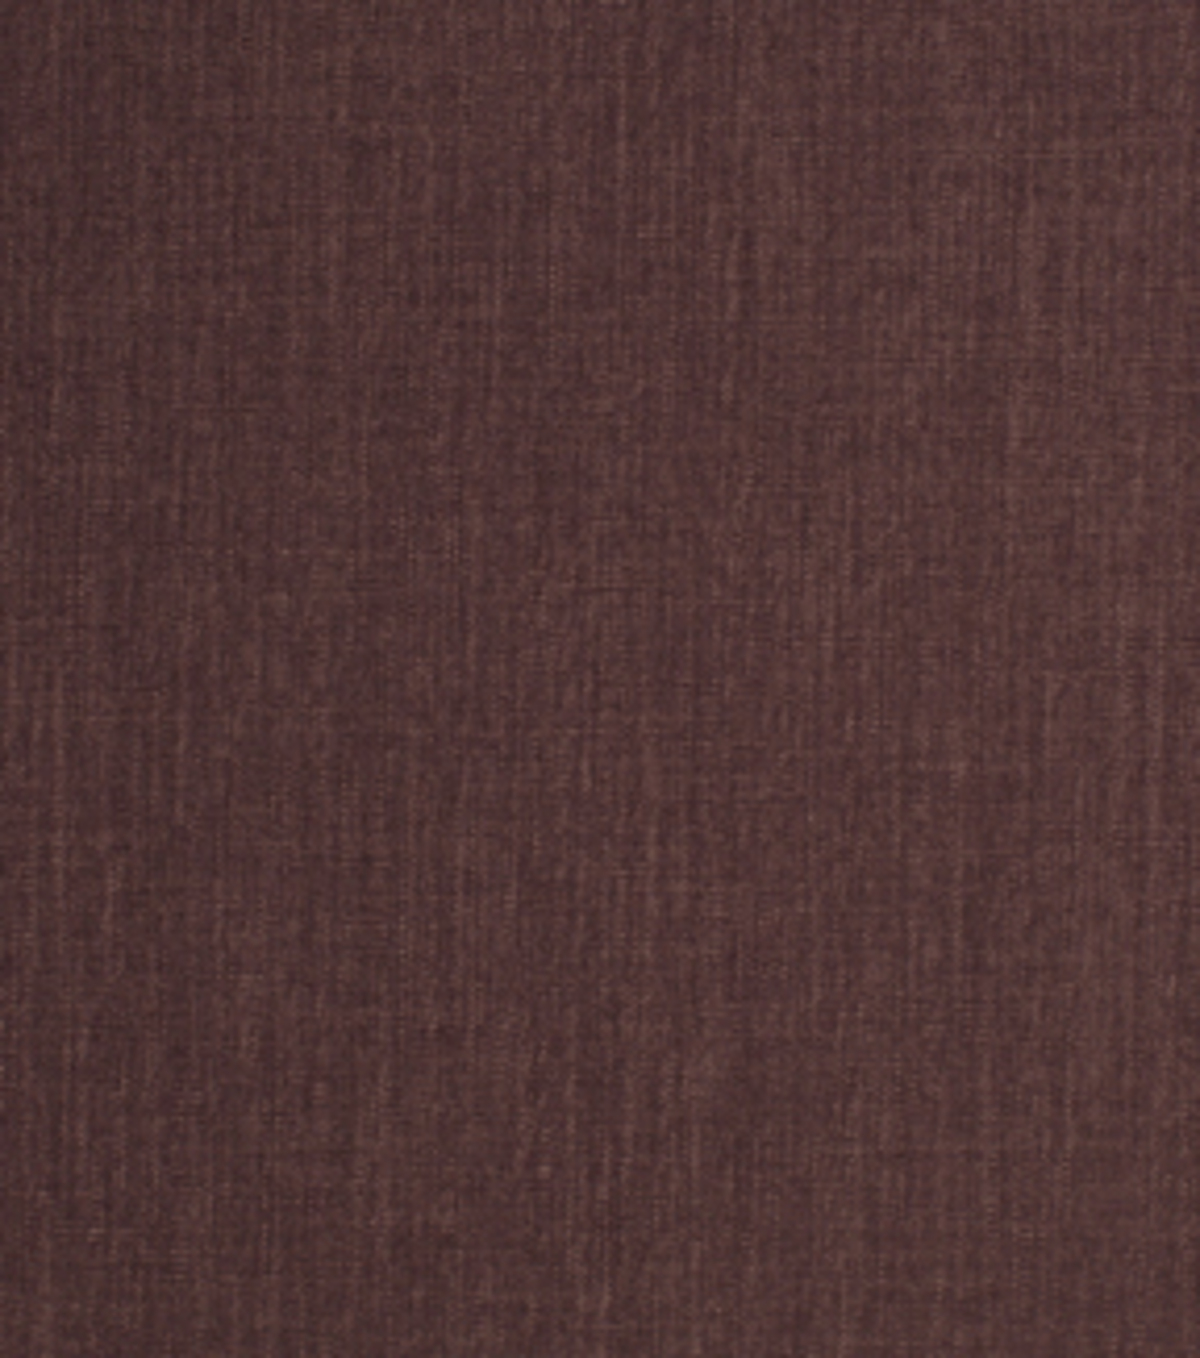 Home Decor 8\u0022x8\u0022 Fabric Swatch-Signature Series Media Eggplant